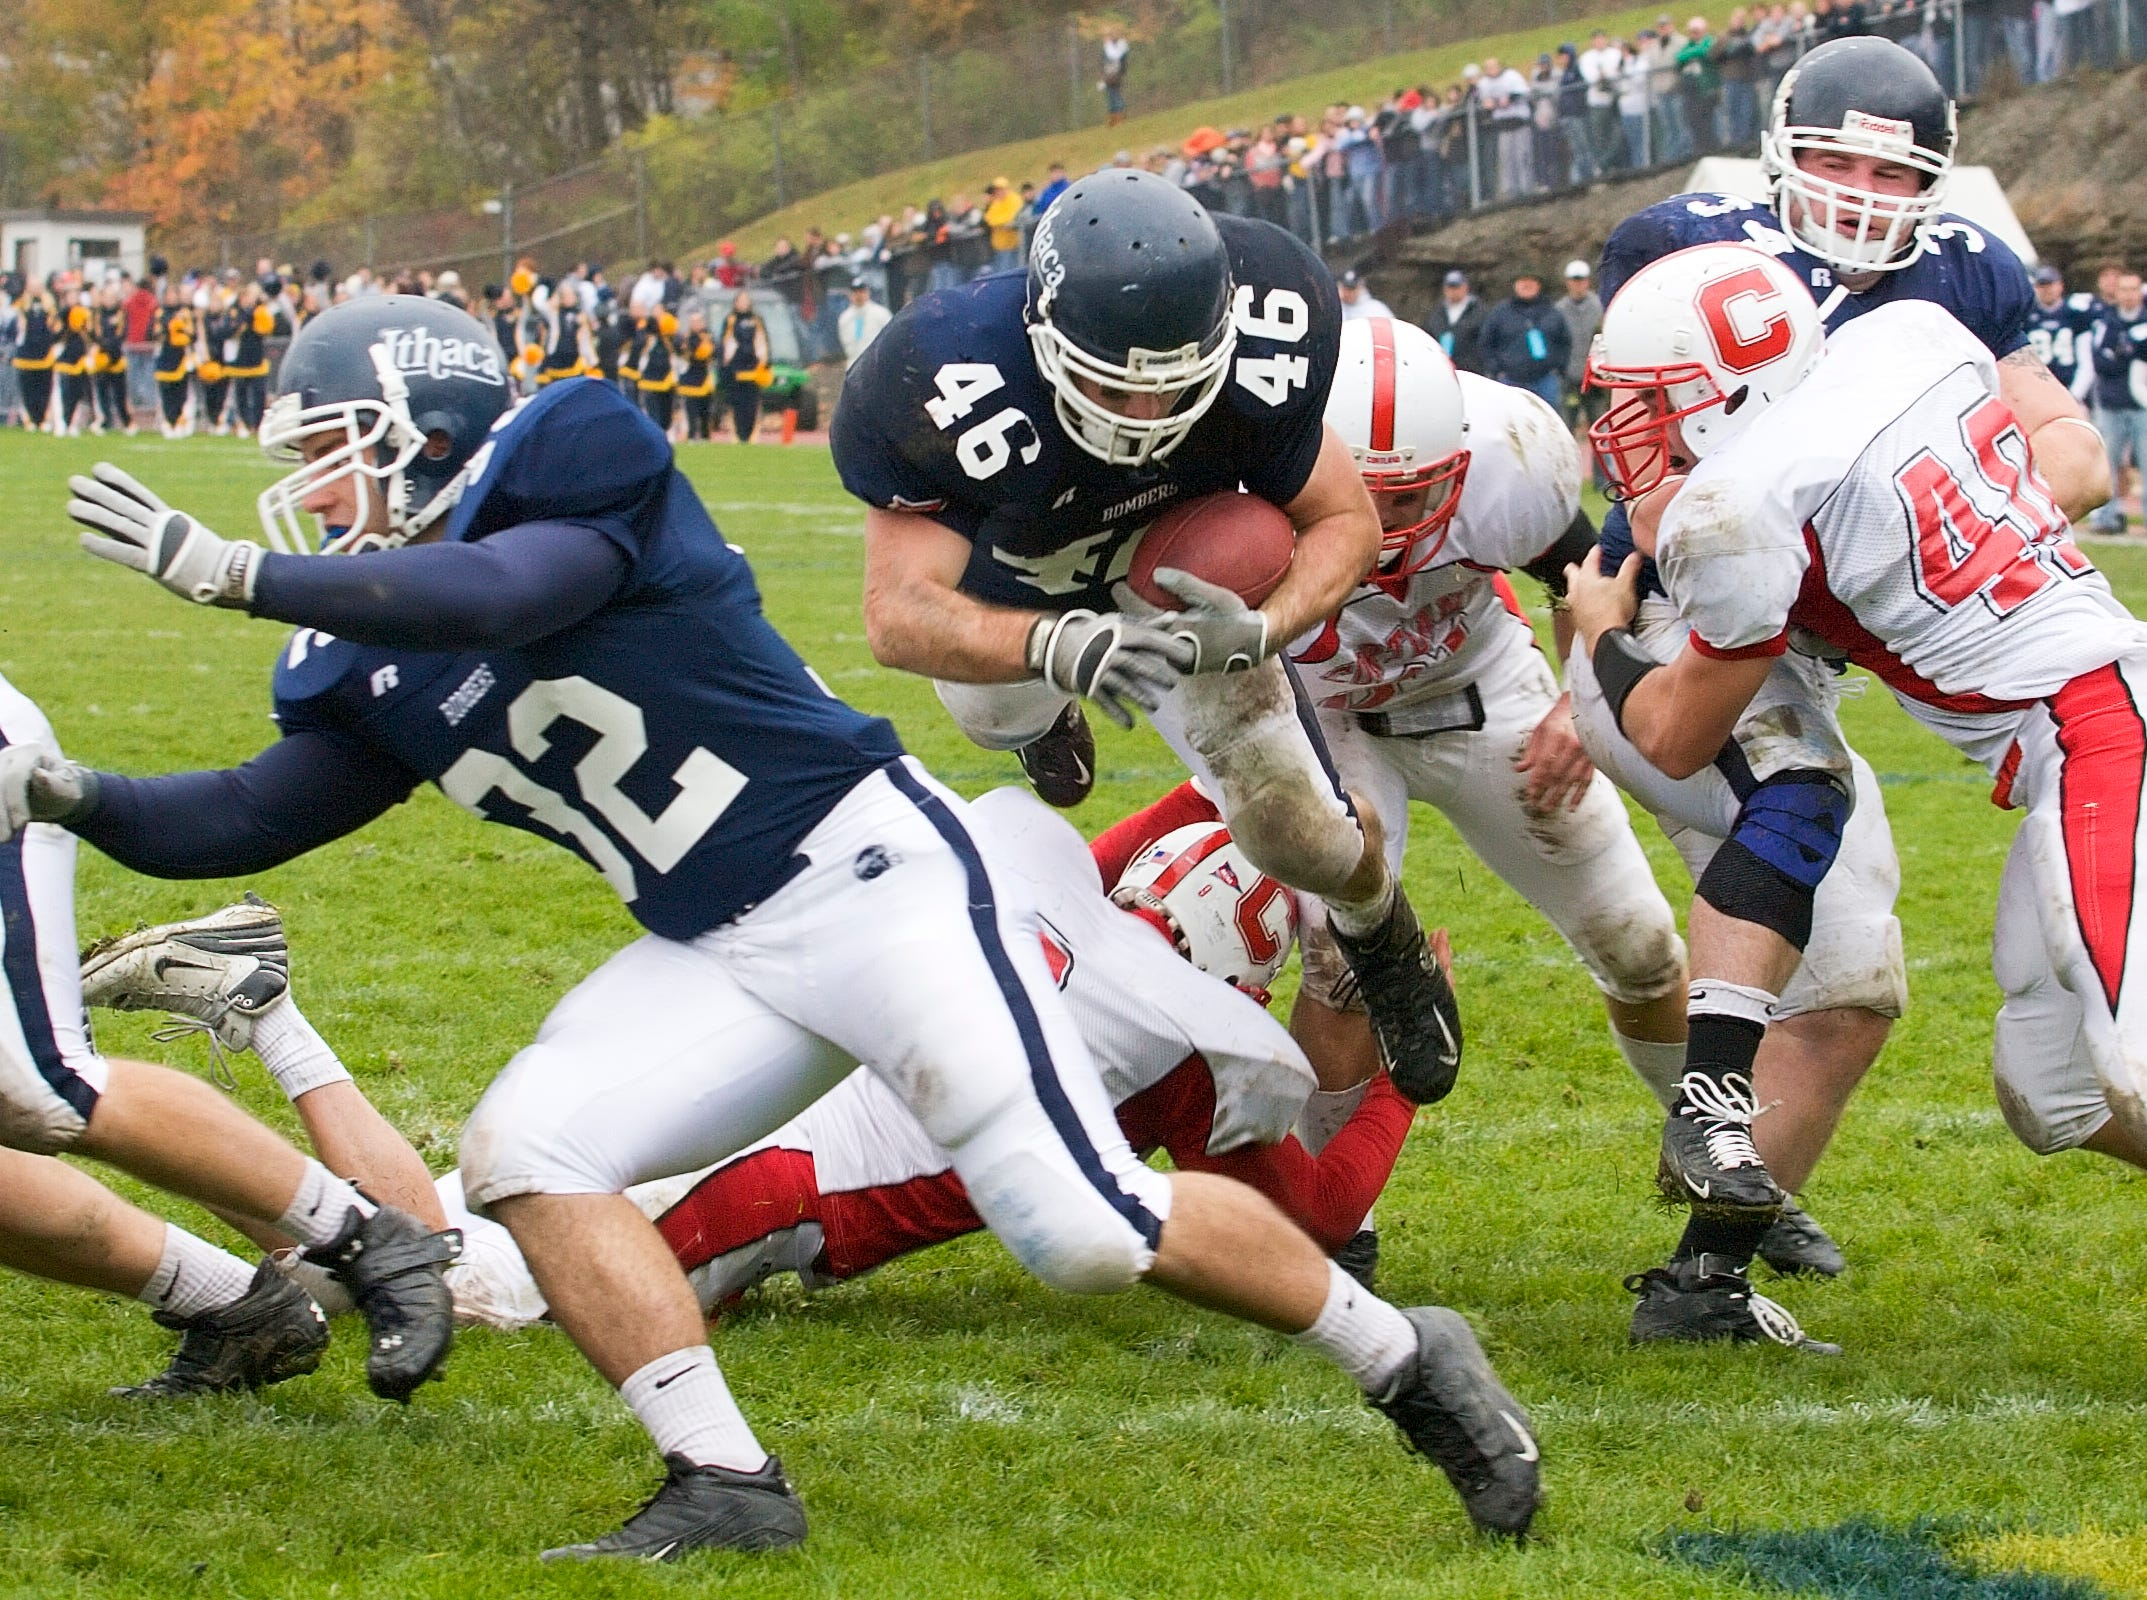 2007: Jamie Donovan dives for an Ithaca College touchdown in the second quarter of play during Saturday afternoonÕs Cortaca Jug at Butterfield Stadium in Ithaca.